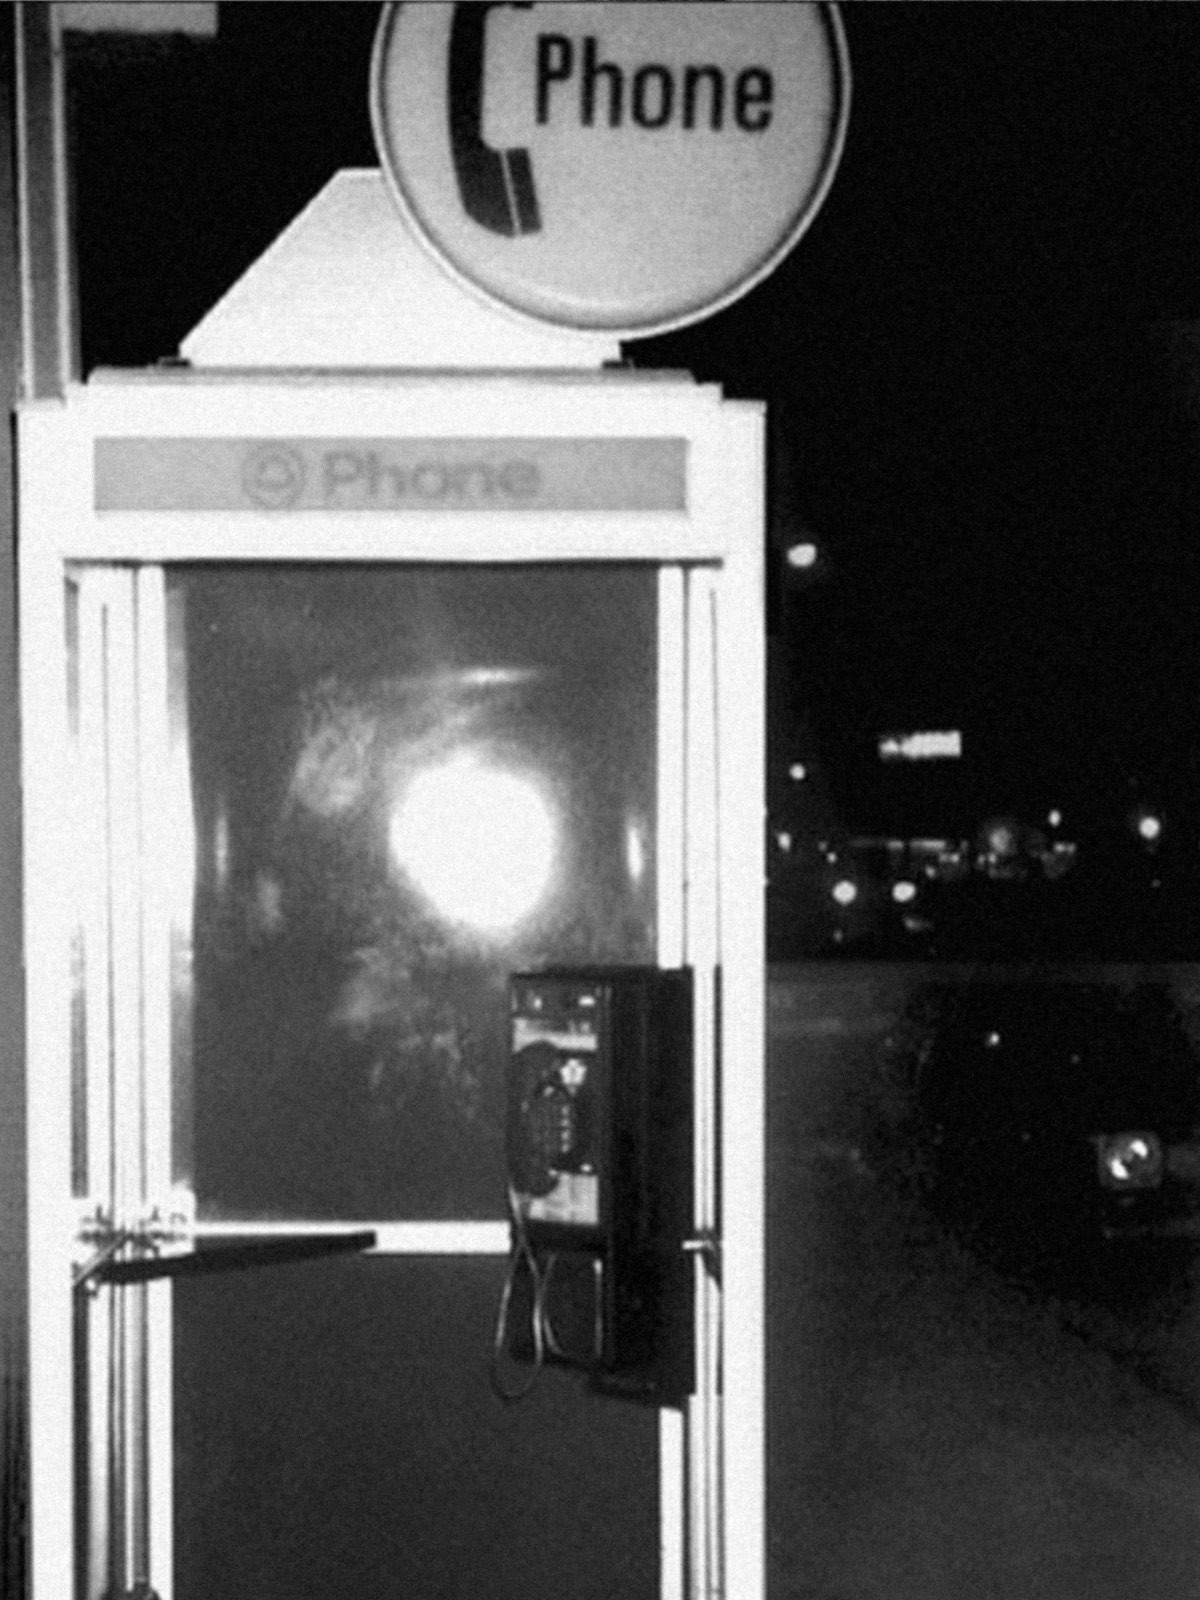 Someone phoned the police from this Vallejo phone booth claiming responsibility for the murders